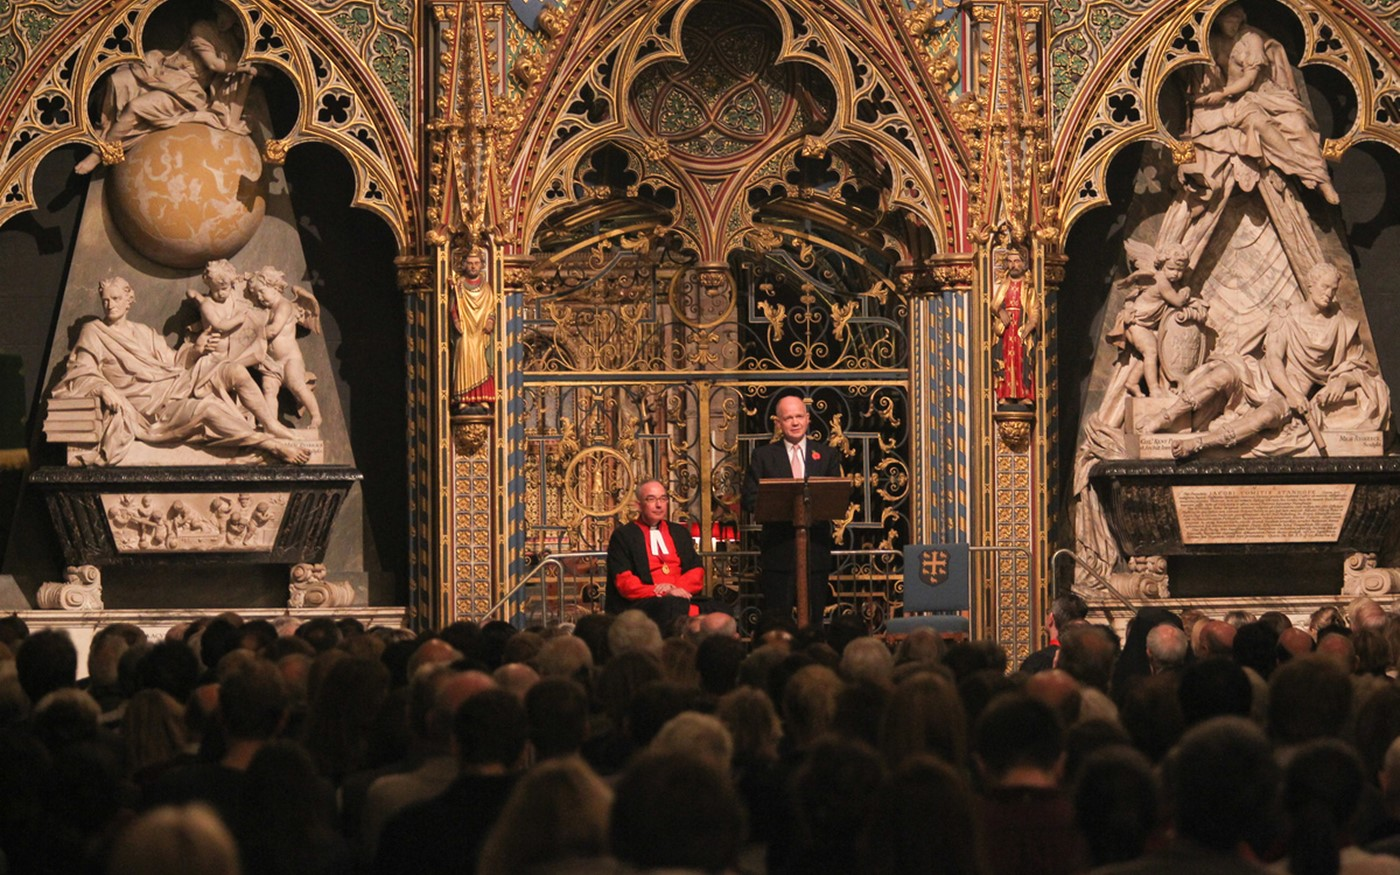 The Rt Hons William Hague MP gives the 2014 One People Oration at Westminster Abbey